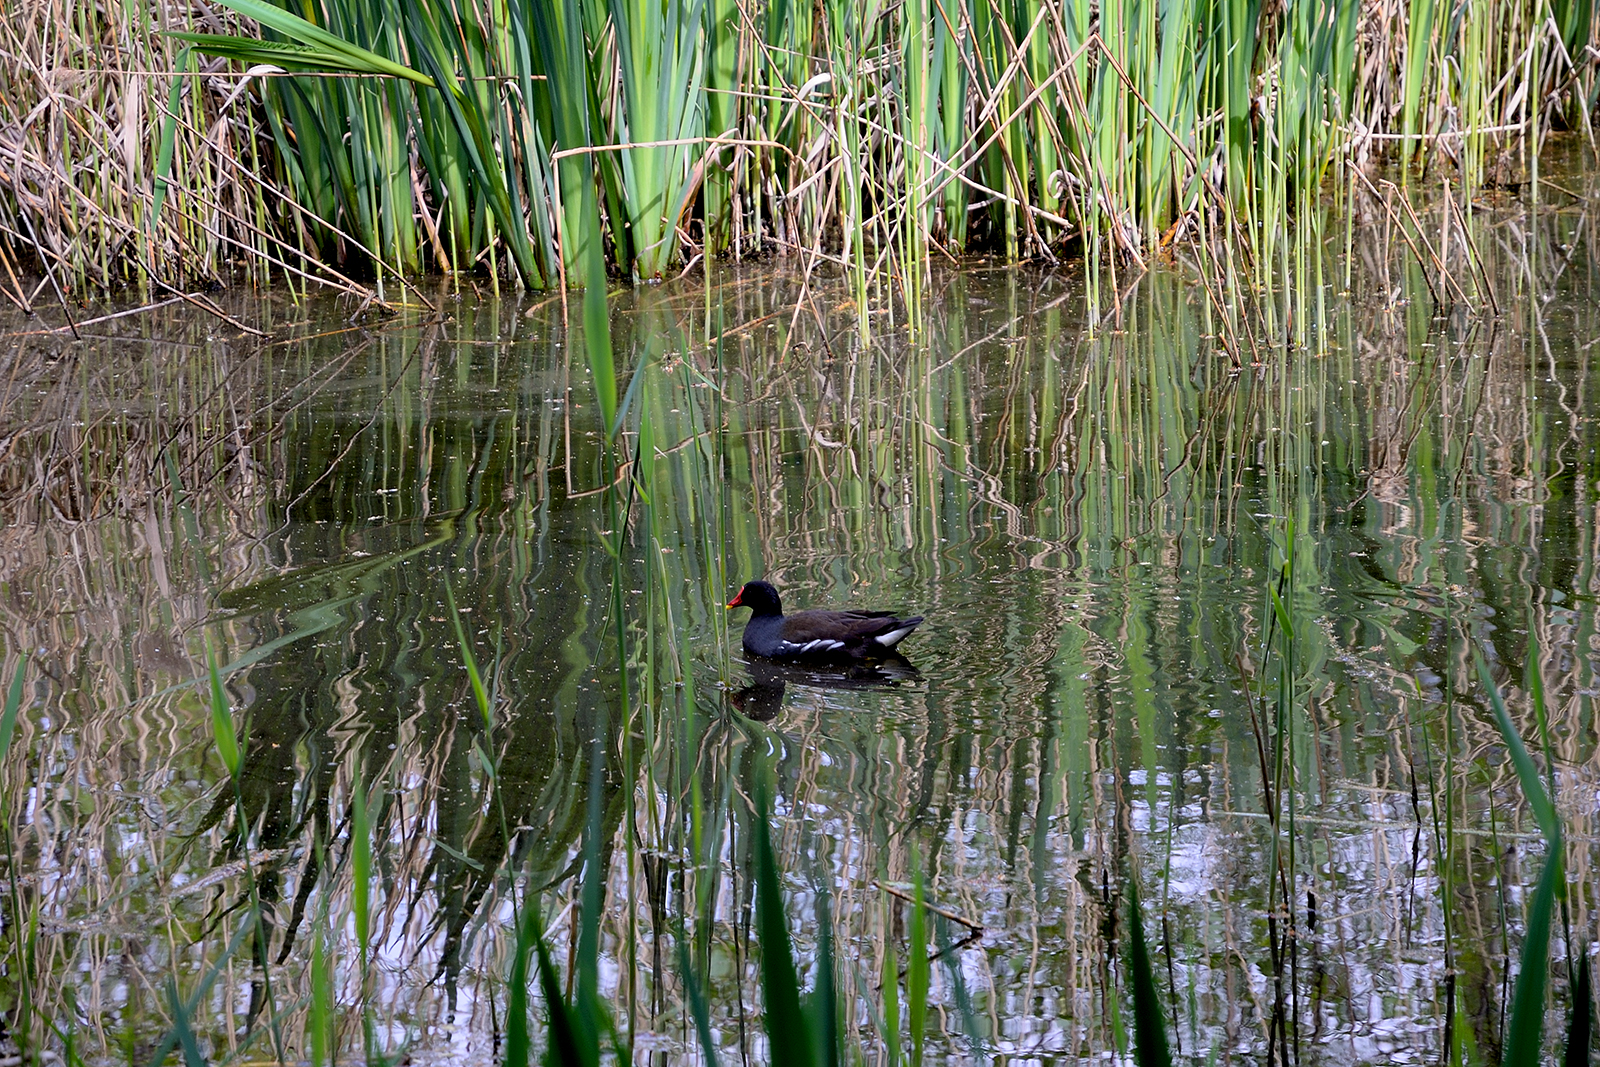 20170415_Camden_Camley-Street_Pond-with-moorhen